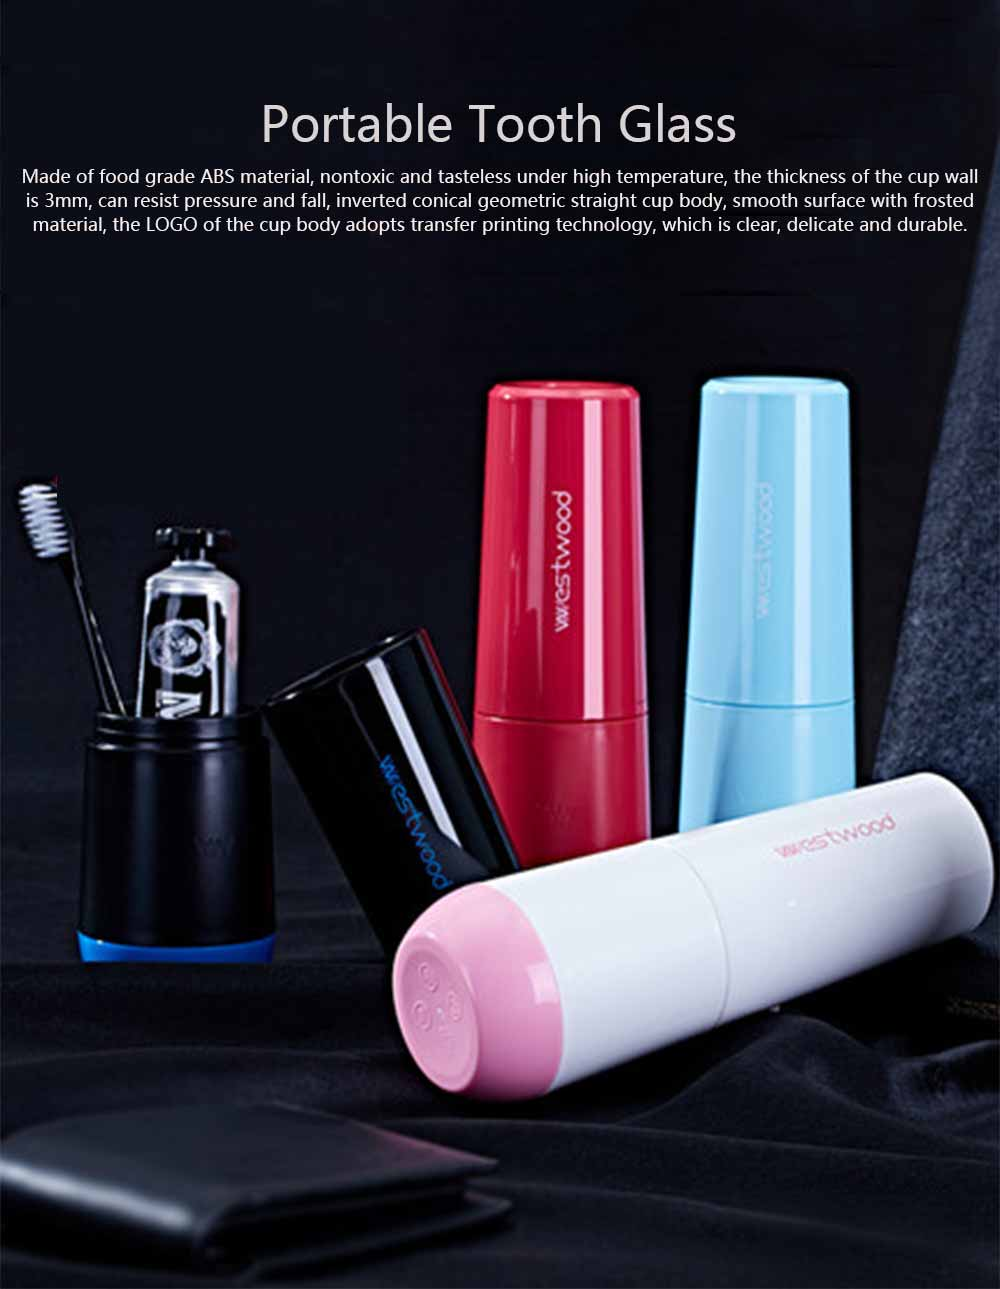 Wash Cup Set Food Grade ABS Portable Tooth Glass for Men and Women Travel Business Trip Toiletries 0